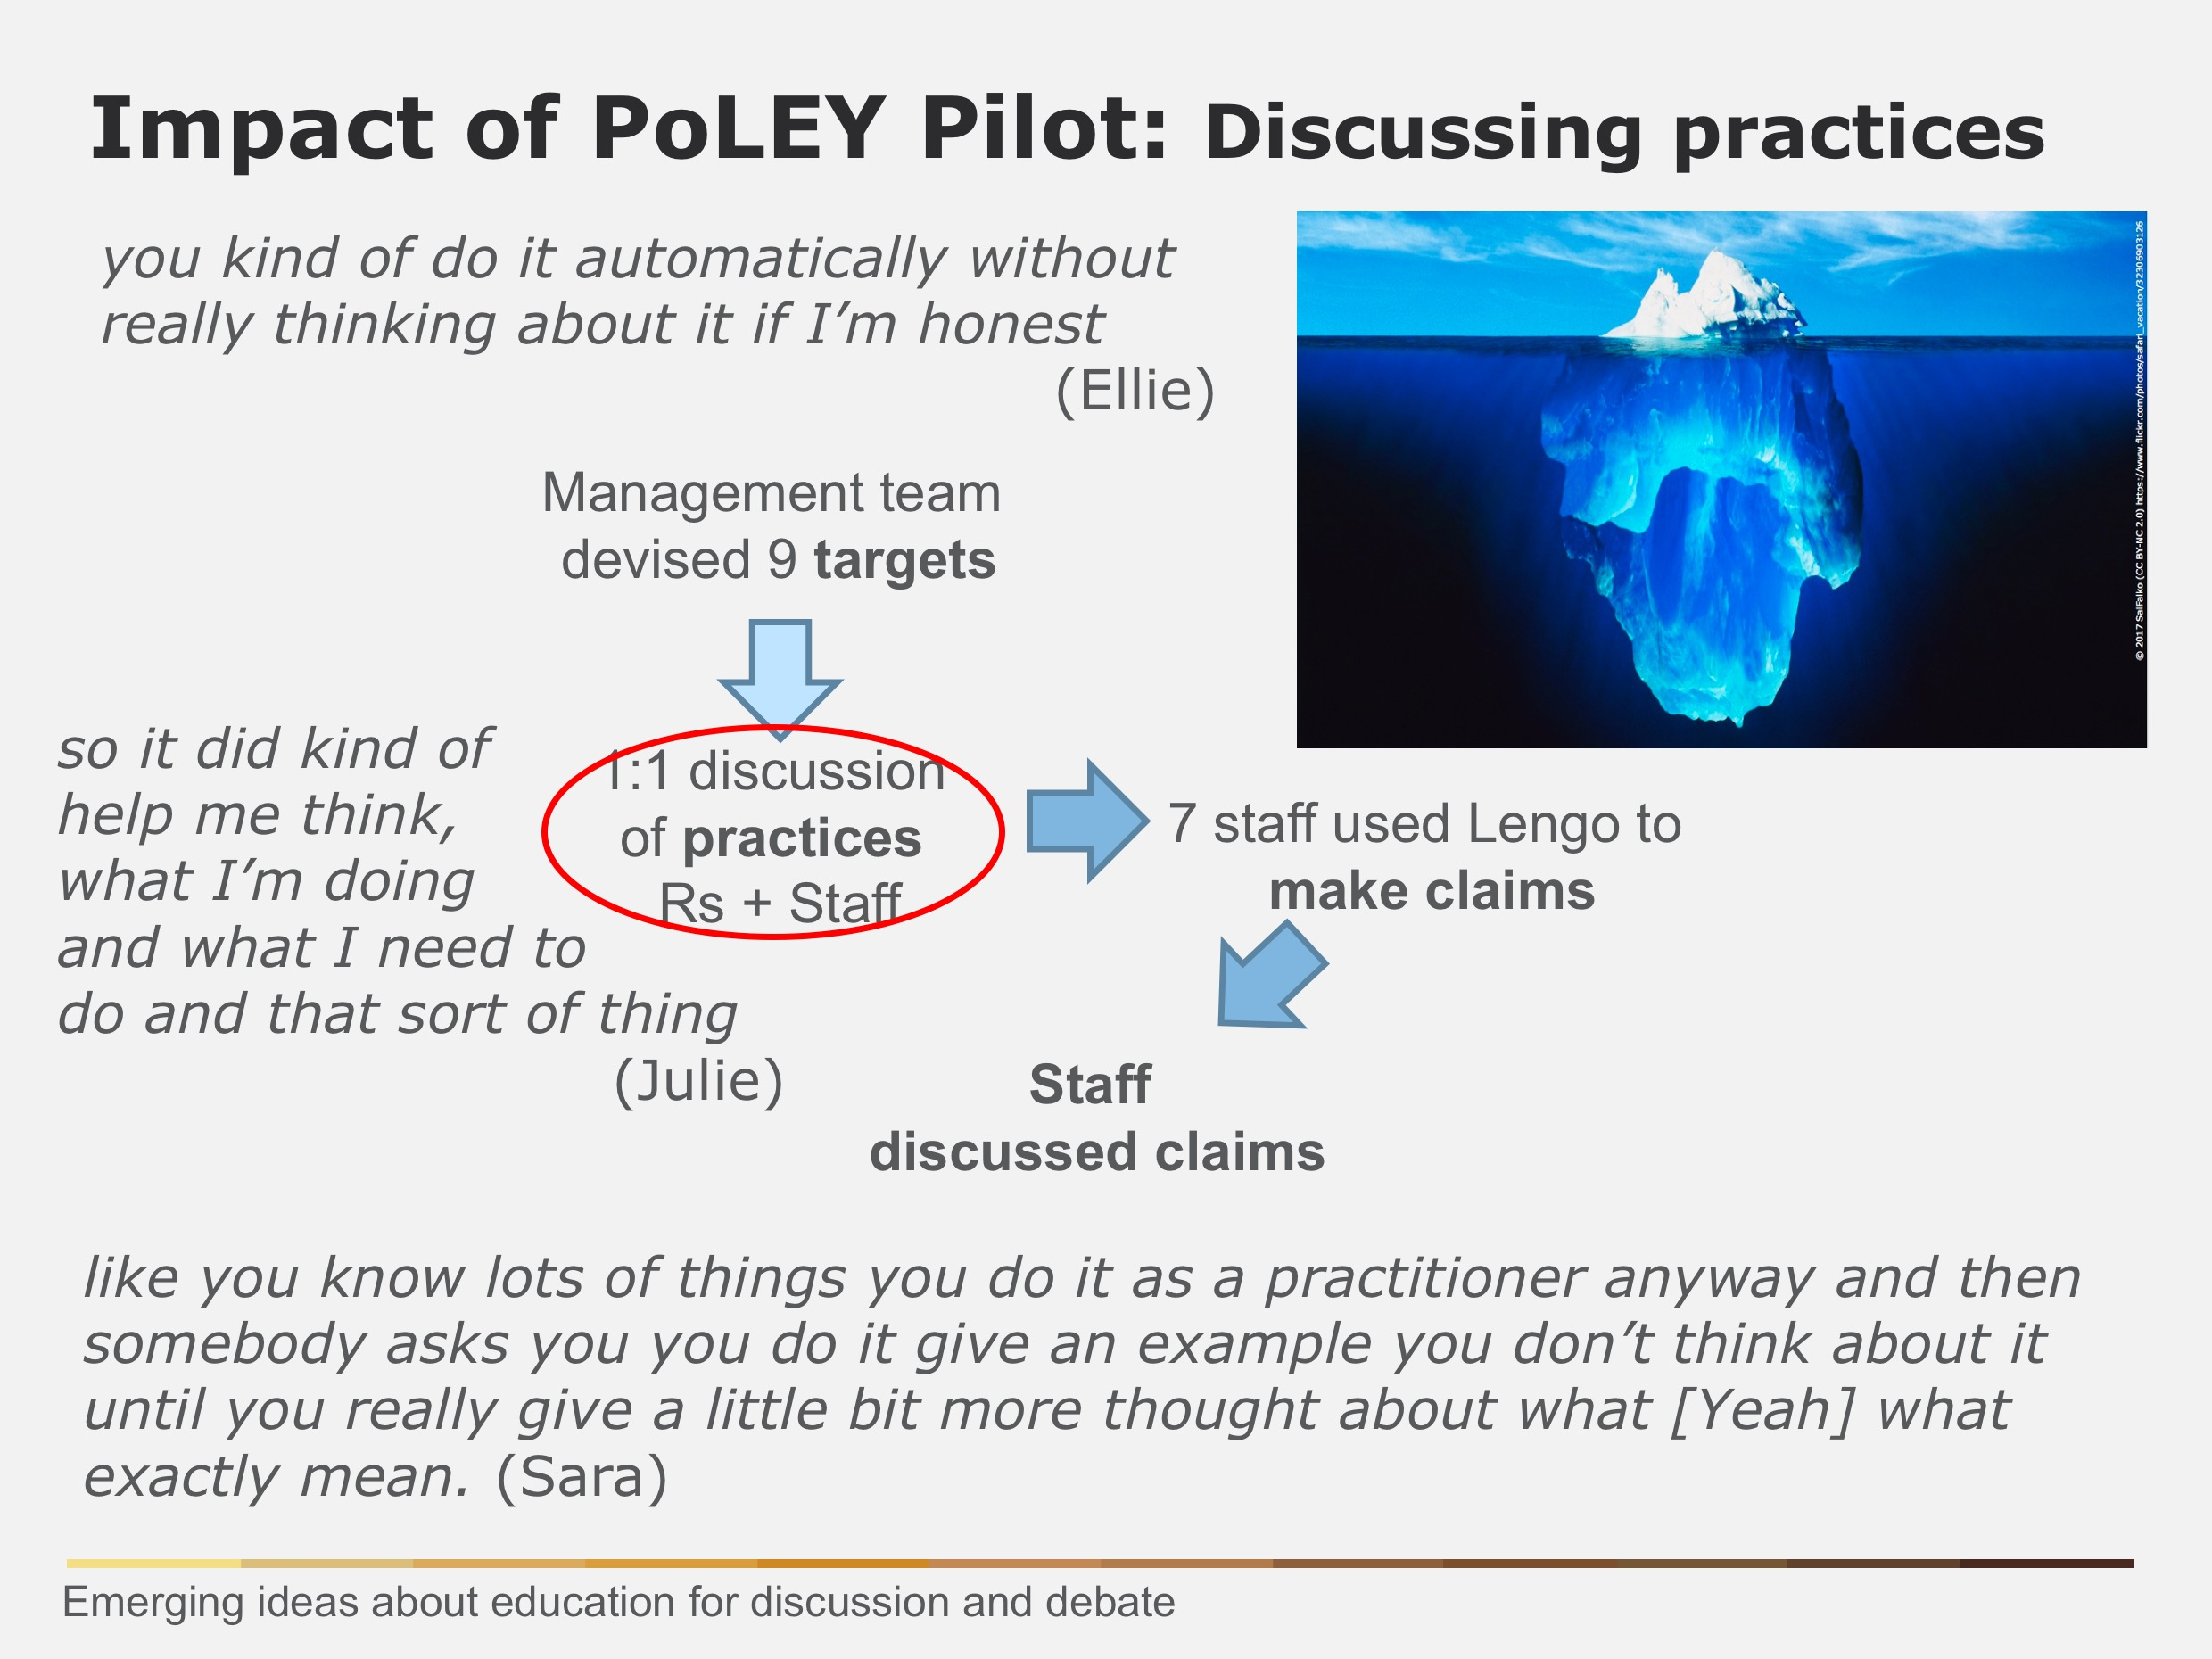 PoLEY Pilot discussing practices